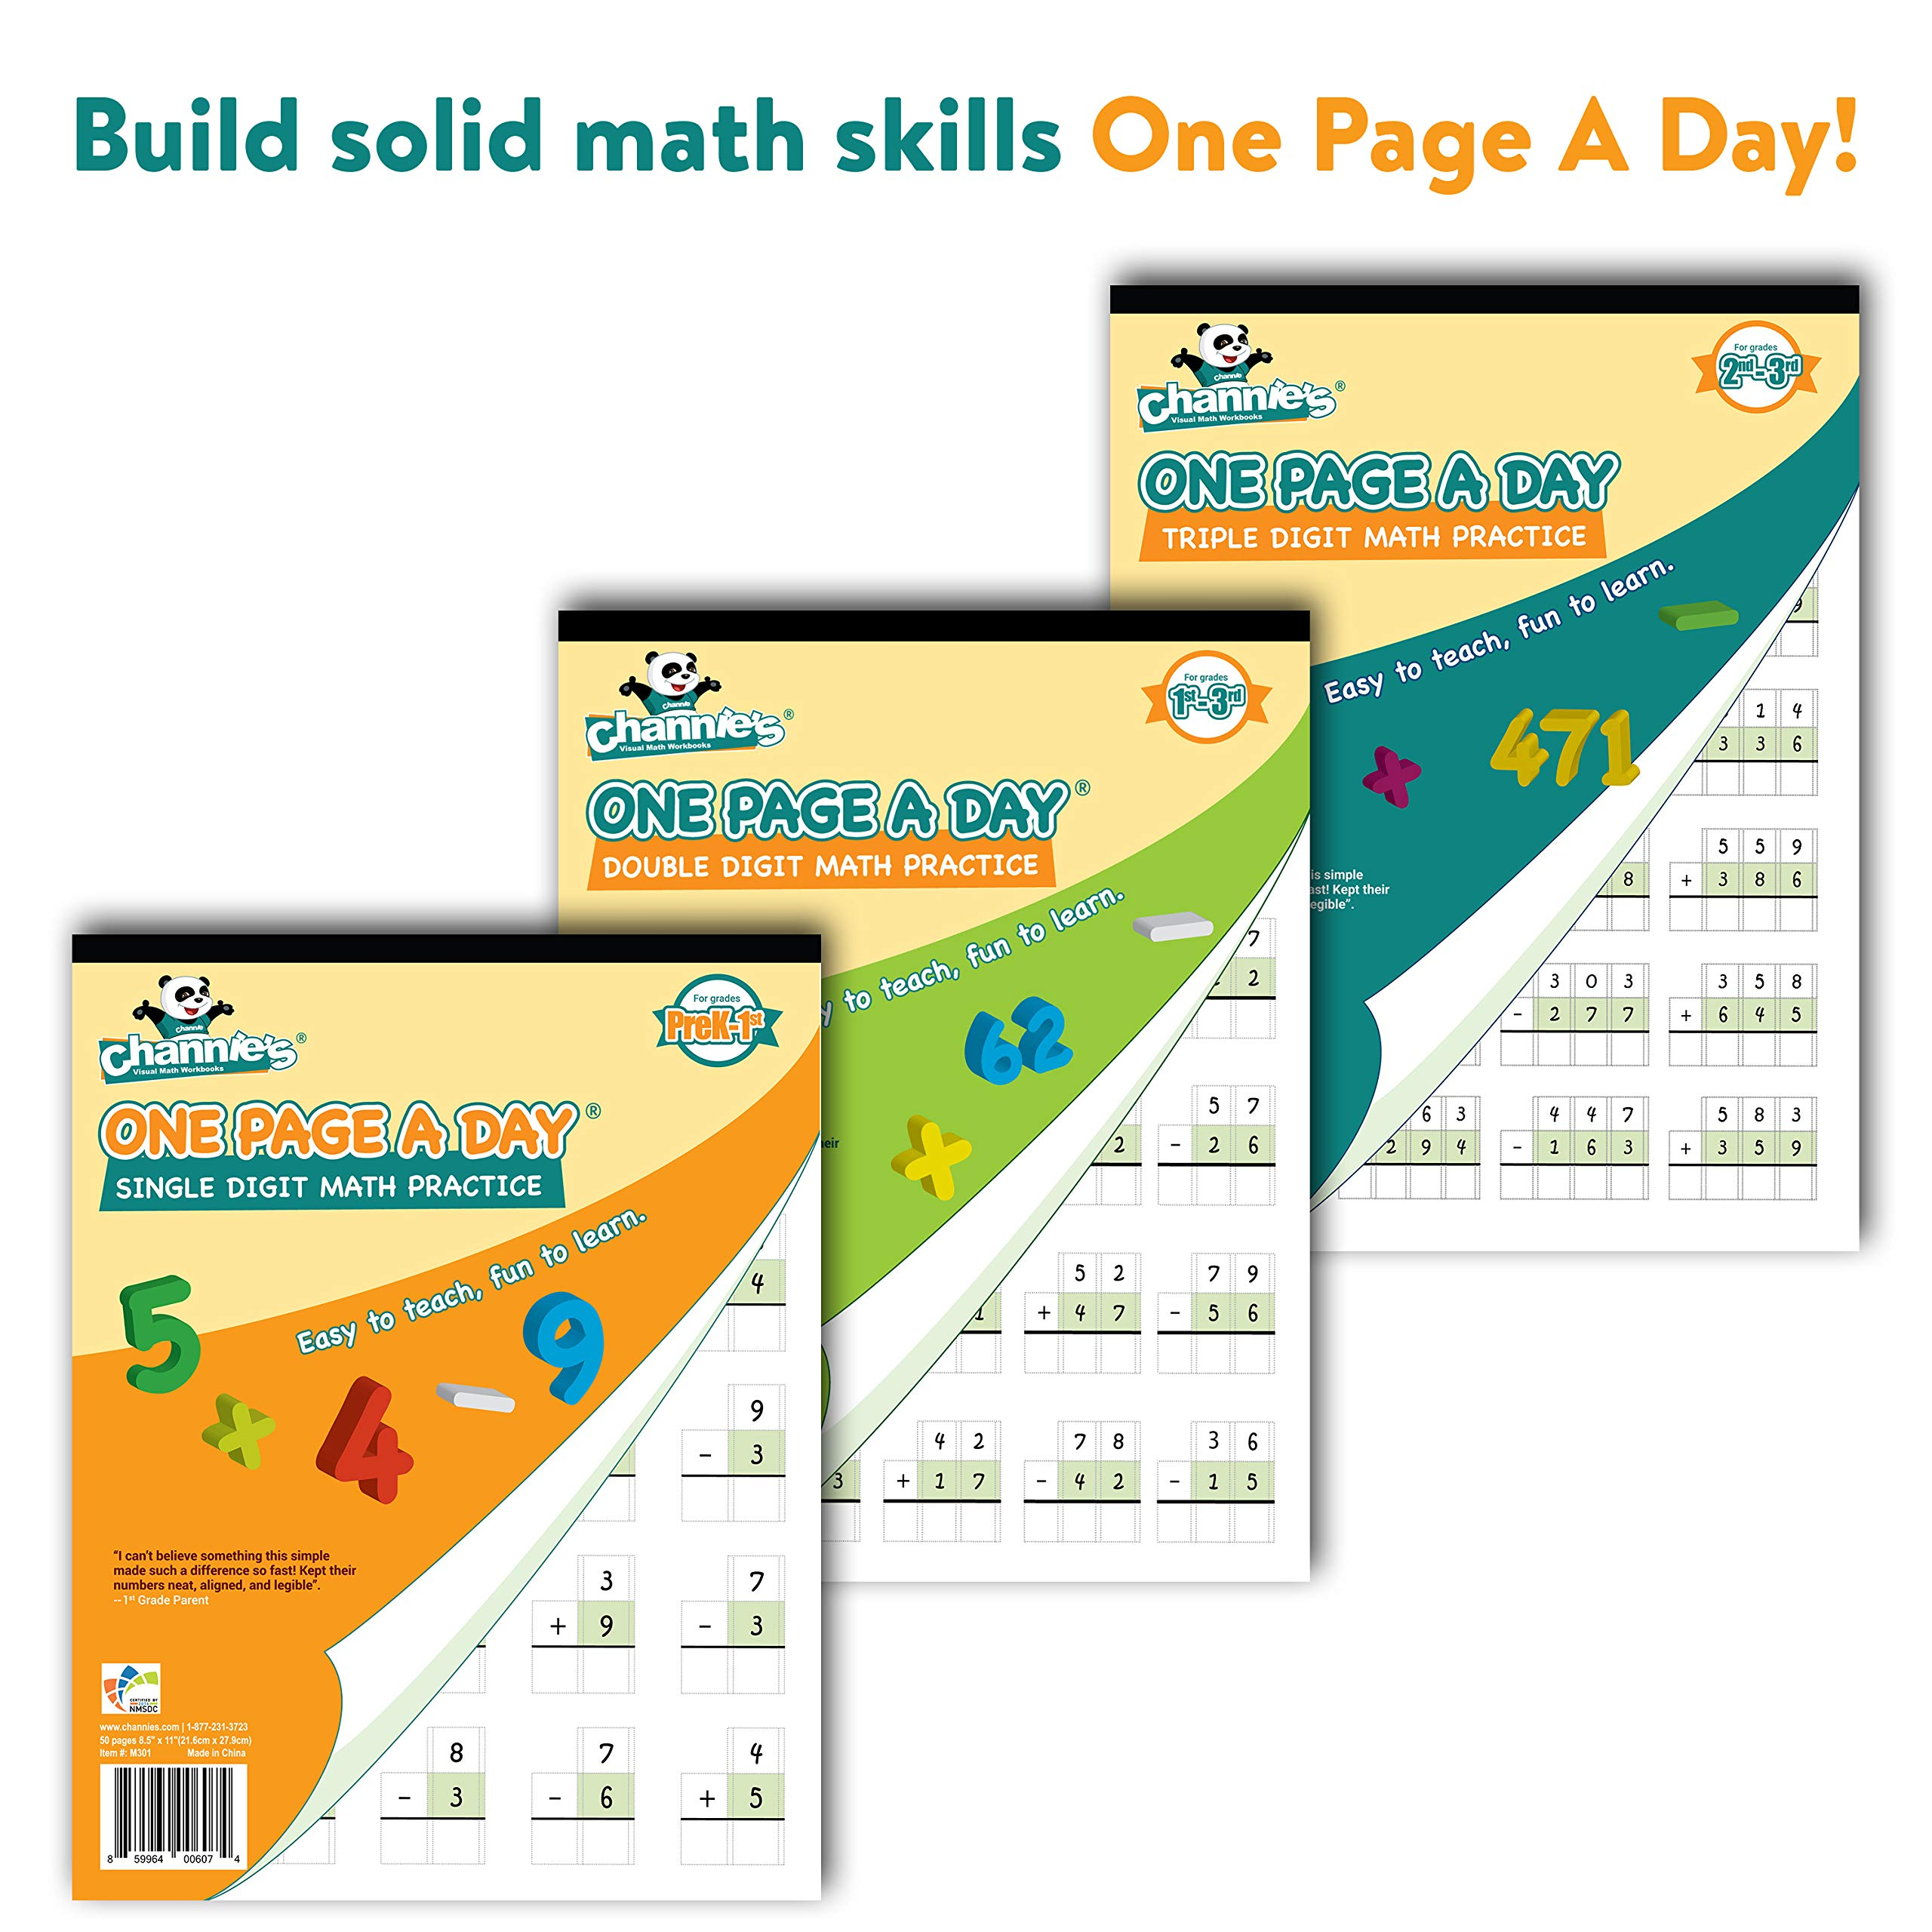 Channie's One Page A Day Single, Double, Triple Digit Math Practice Worksheets 3 Pack! Grades 2-4th Size 8.5'' x 11''